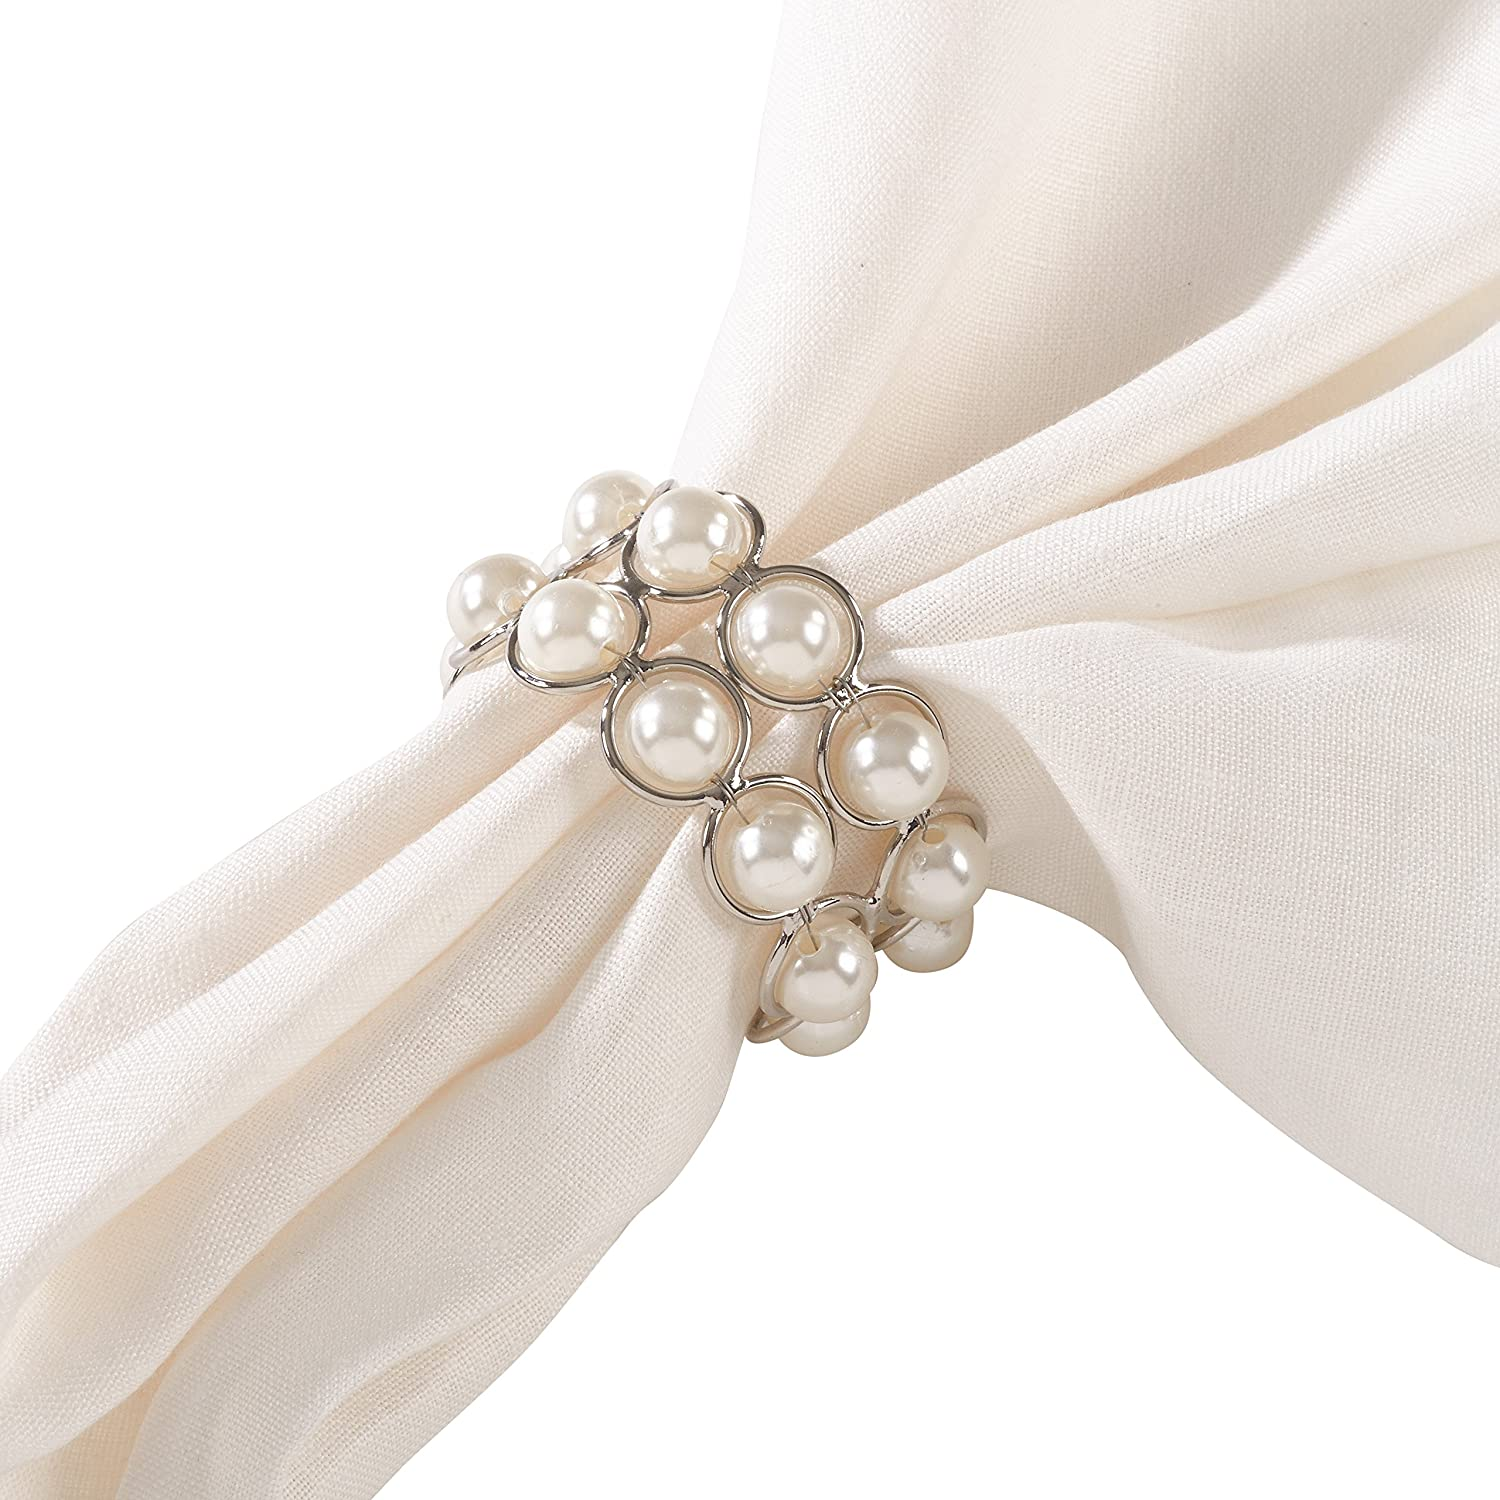 SARO LIFESTYLE Faux Pearl Flower Design Napkin Ring Set of 4 Ivory 2.5 x 3.5